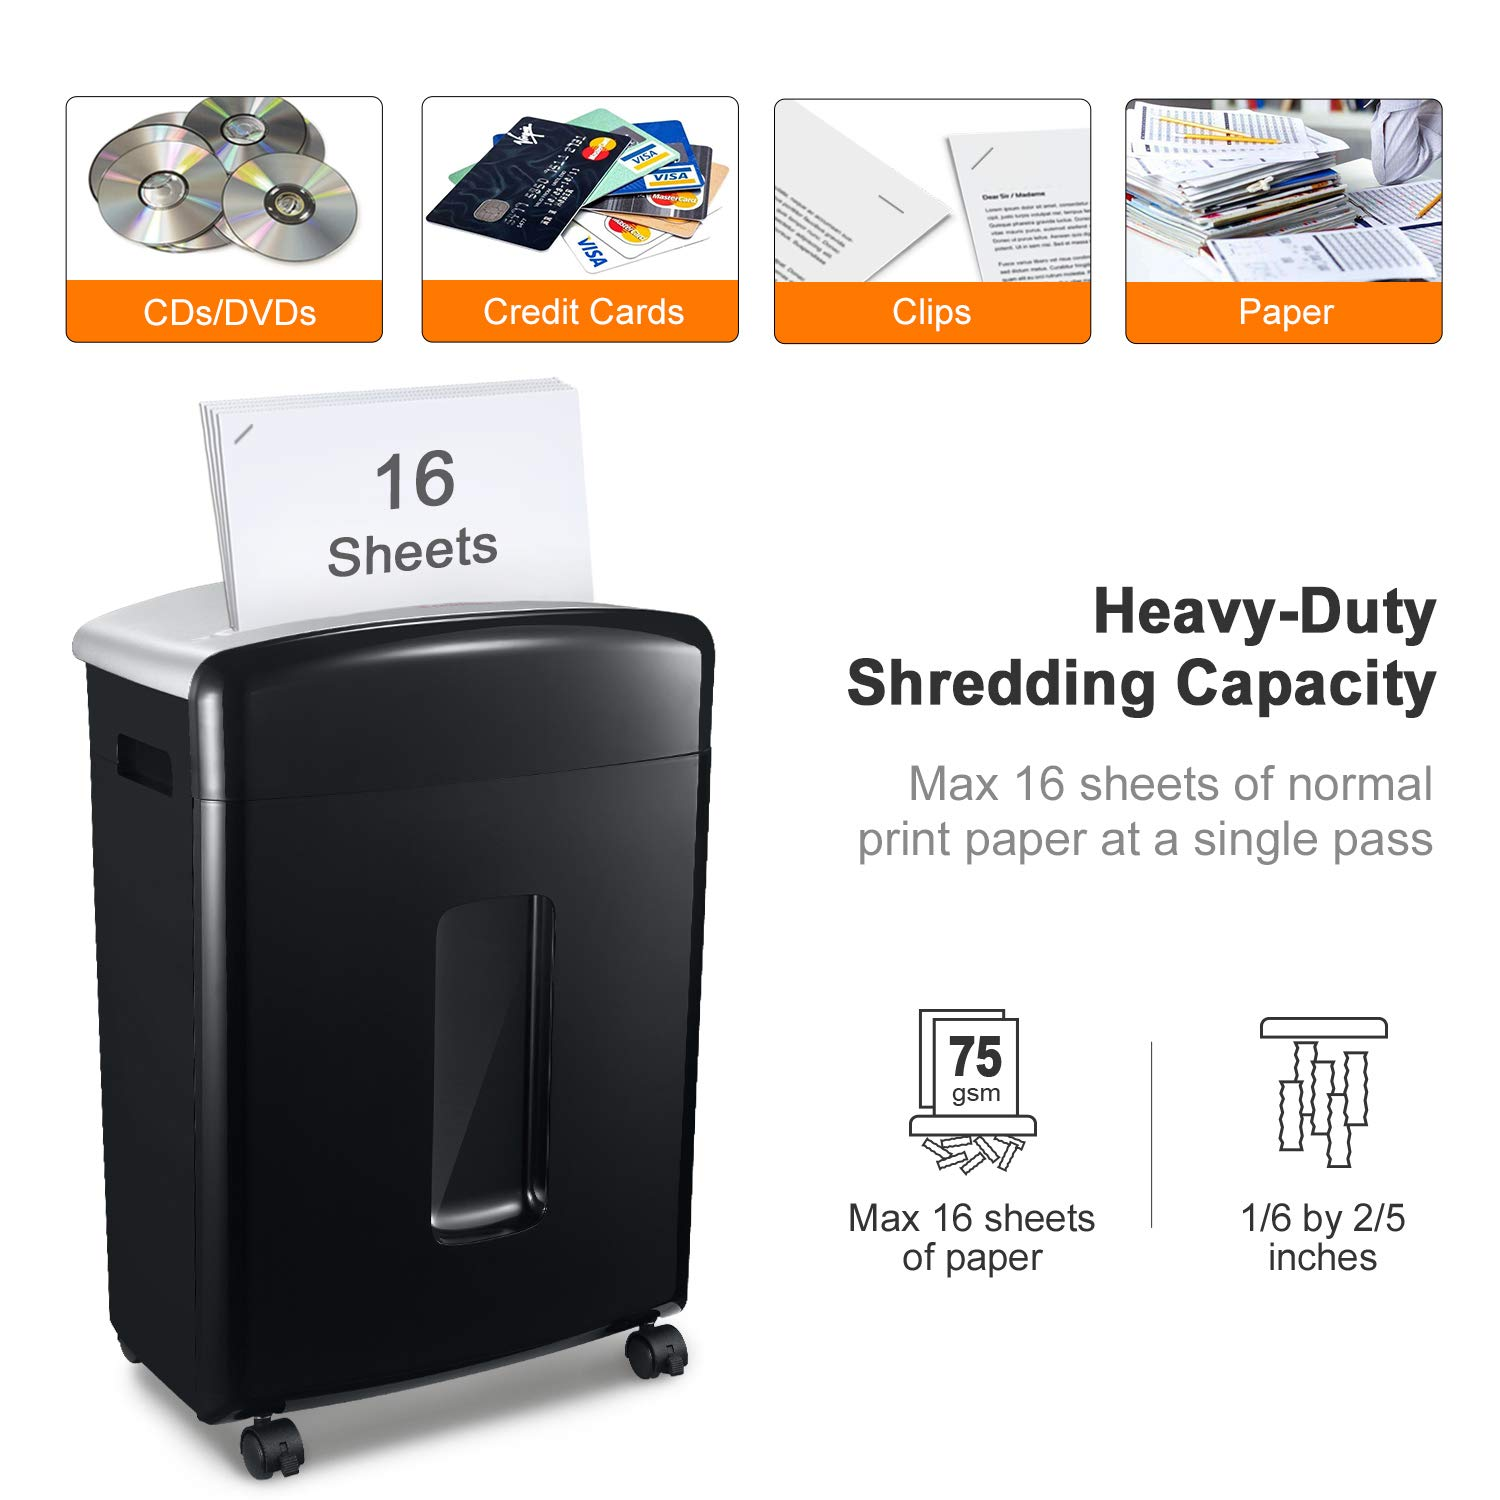 Bonsaii 16-Sheet Micro-Cut Paper/CD/Credit Card Shredder, 20 Minutes Running Time, 60 dB Low Operation Noise, 6.6 Gallons Basket and 4 Casters (C222-B) by bonsaii (Image #2)